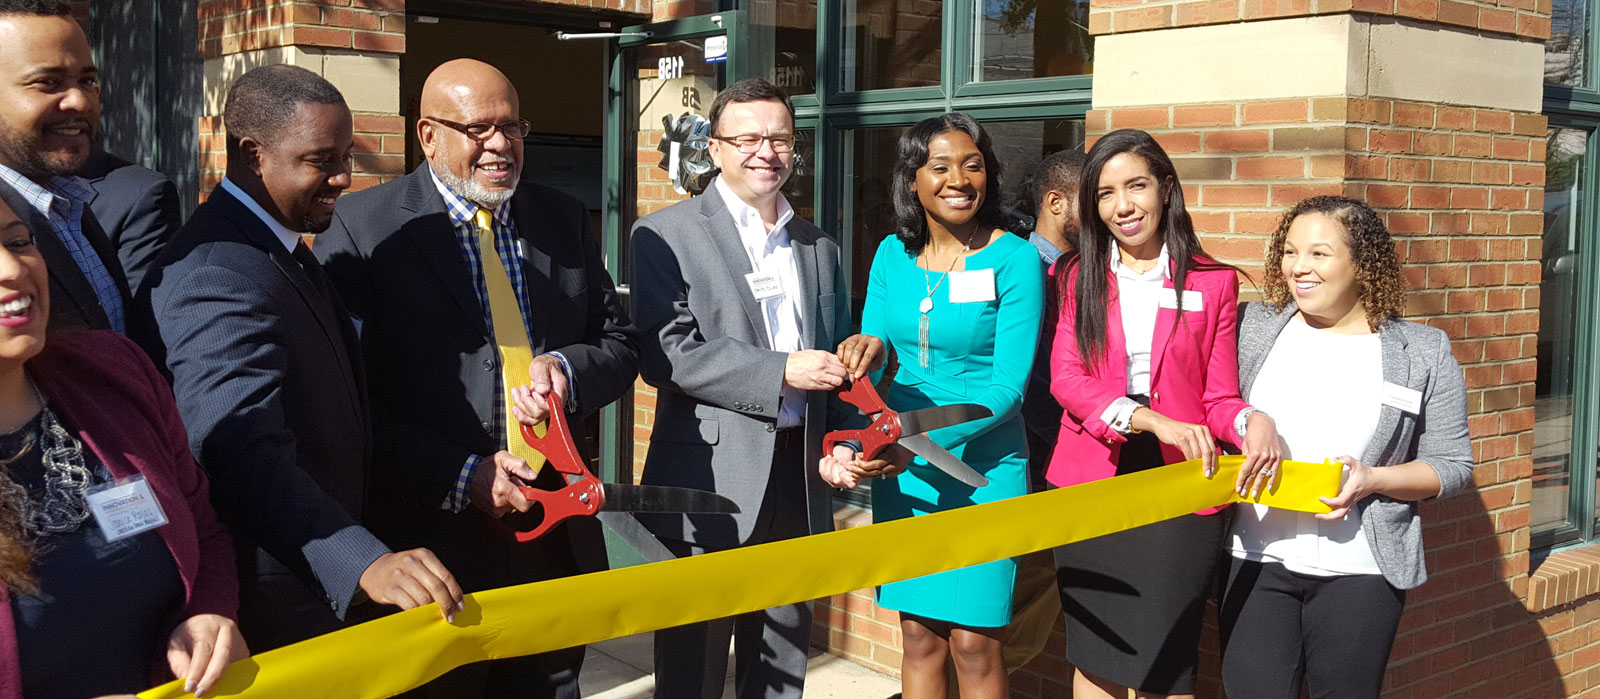 Photo: Innovation and Entrepreneurship Center Ribbon Cutting